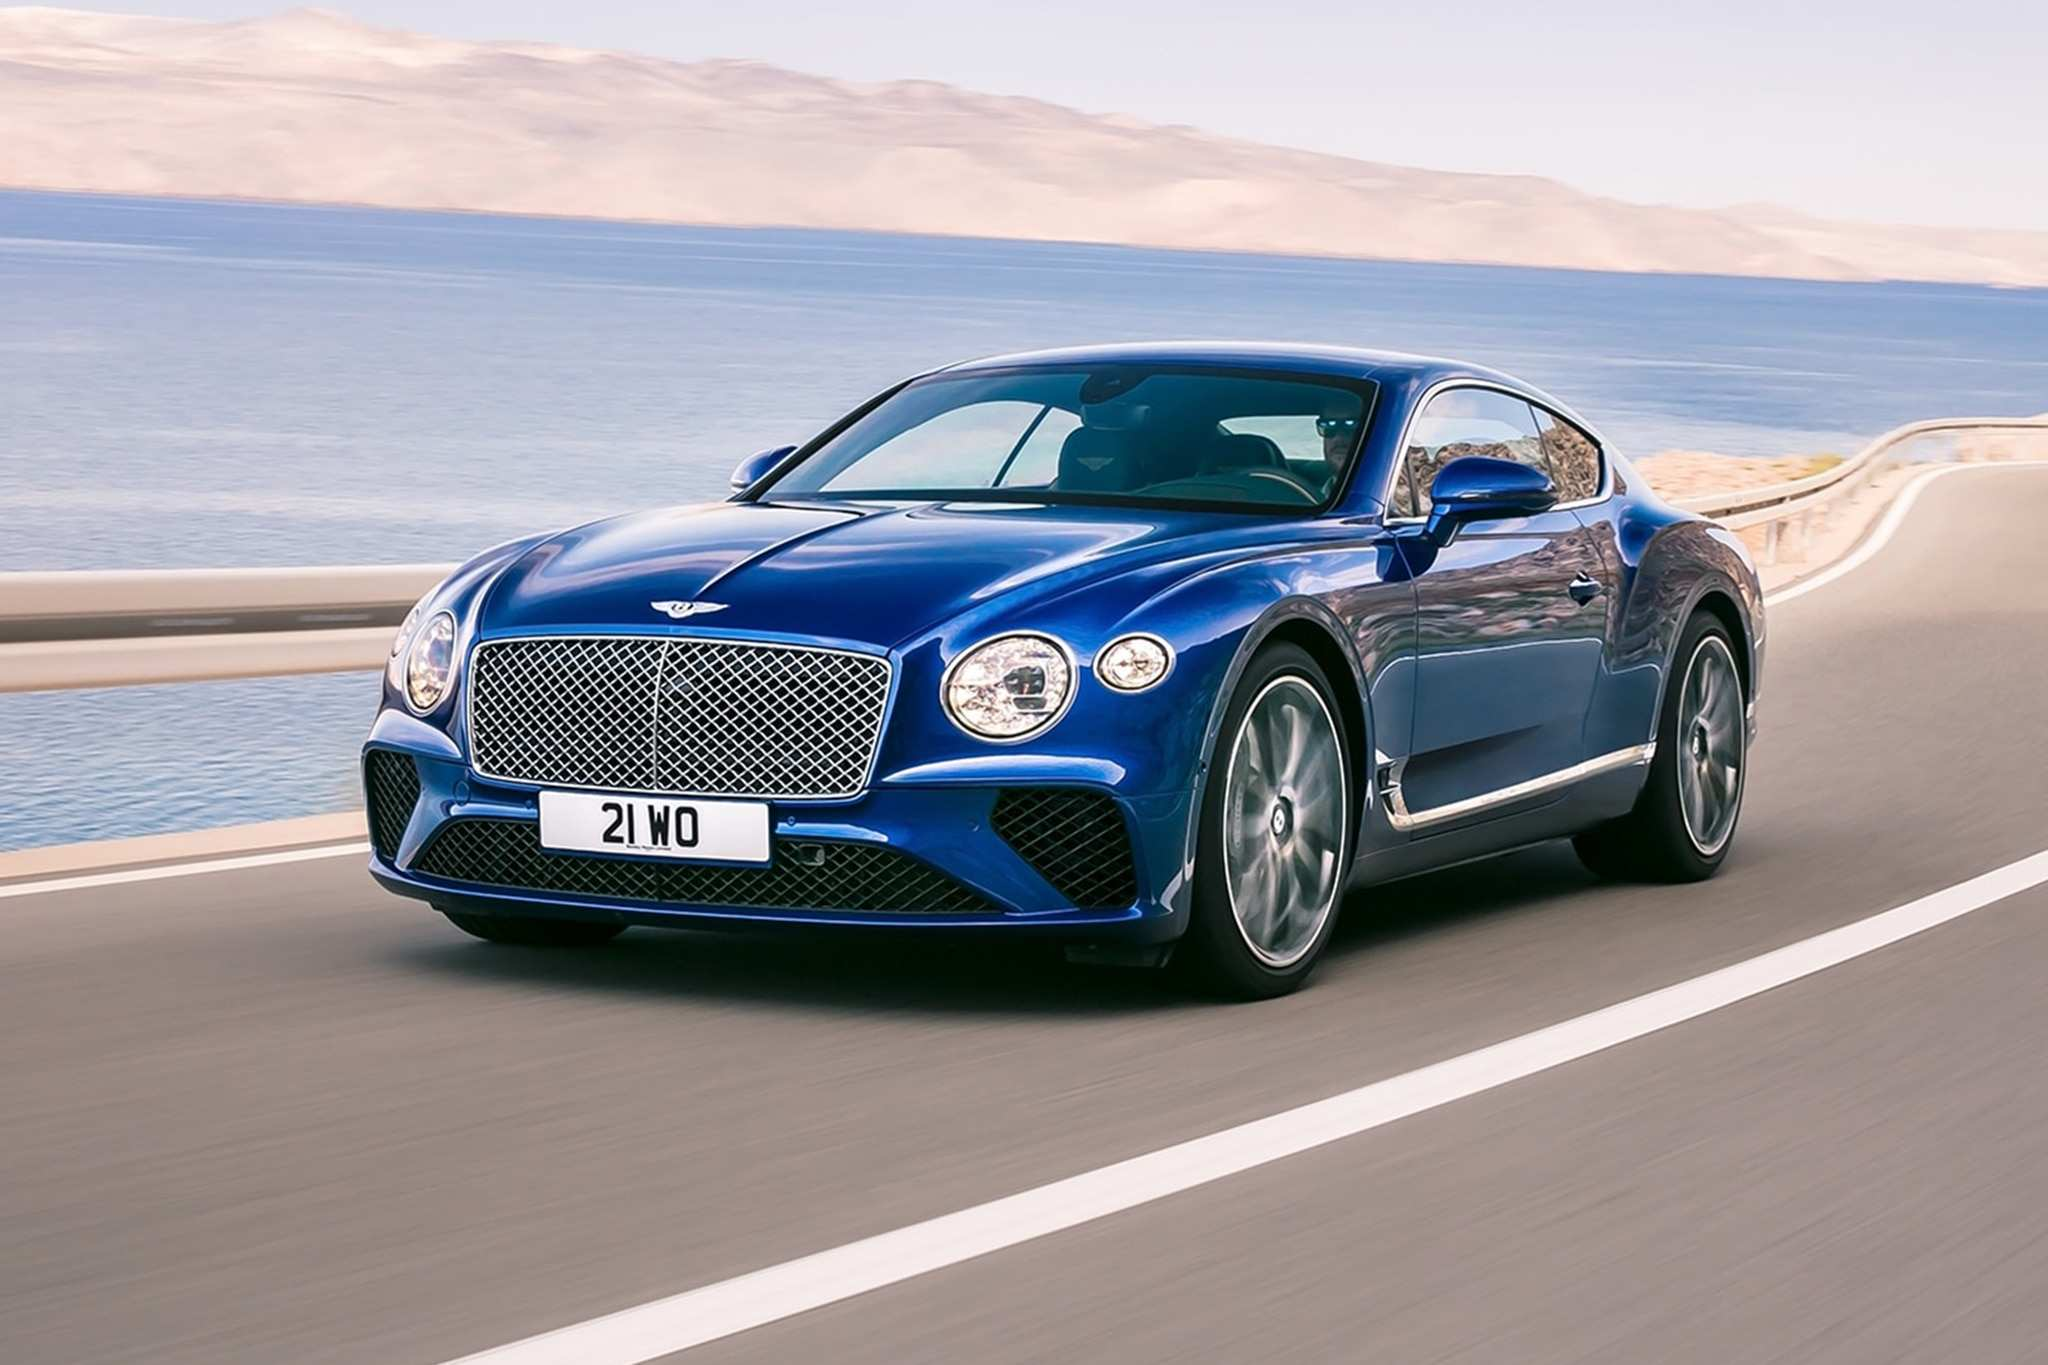 57 New 2019 Bentley Continental Gt Release Date Specs and Review by 2019 Bentley Continental Gt Release Date